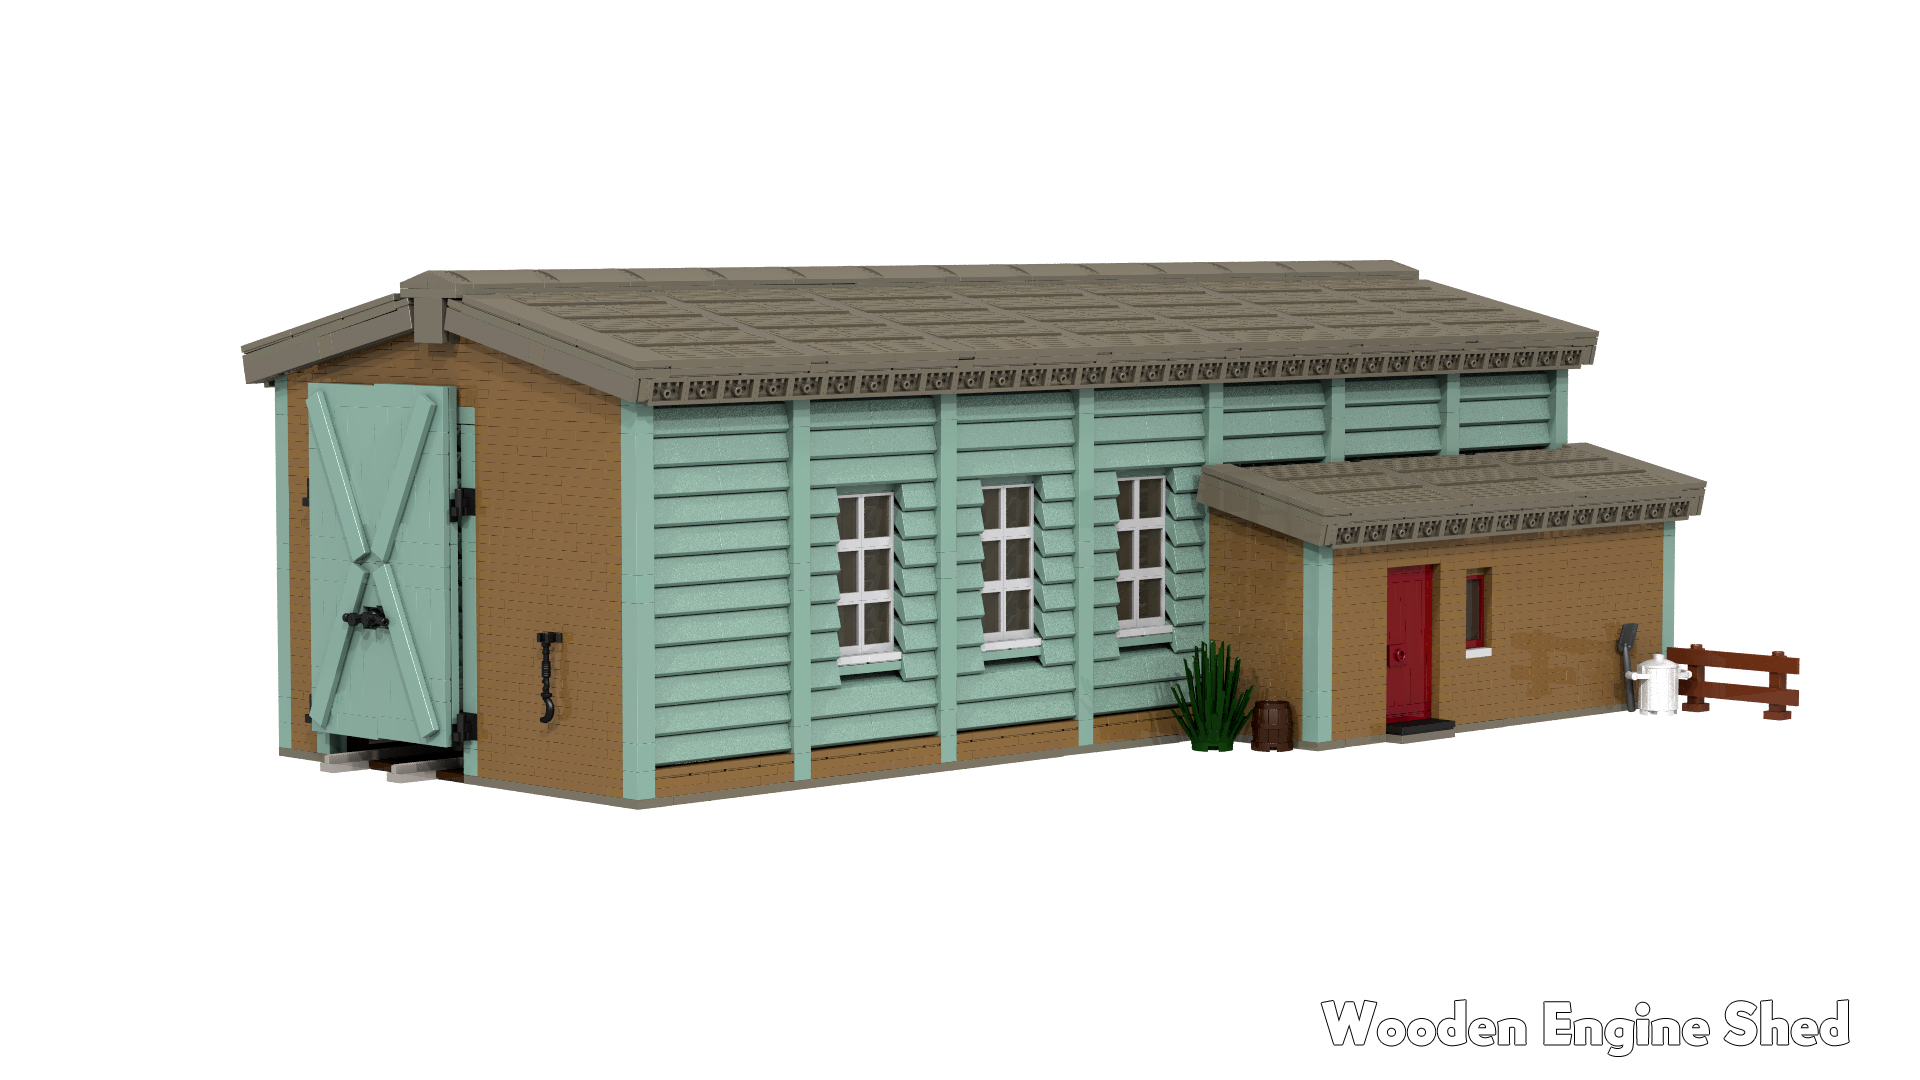 03a_wooden_engine_shed_-_render.jpg